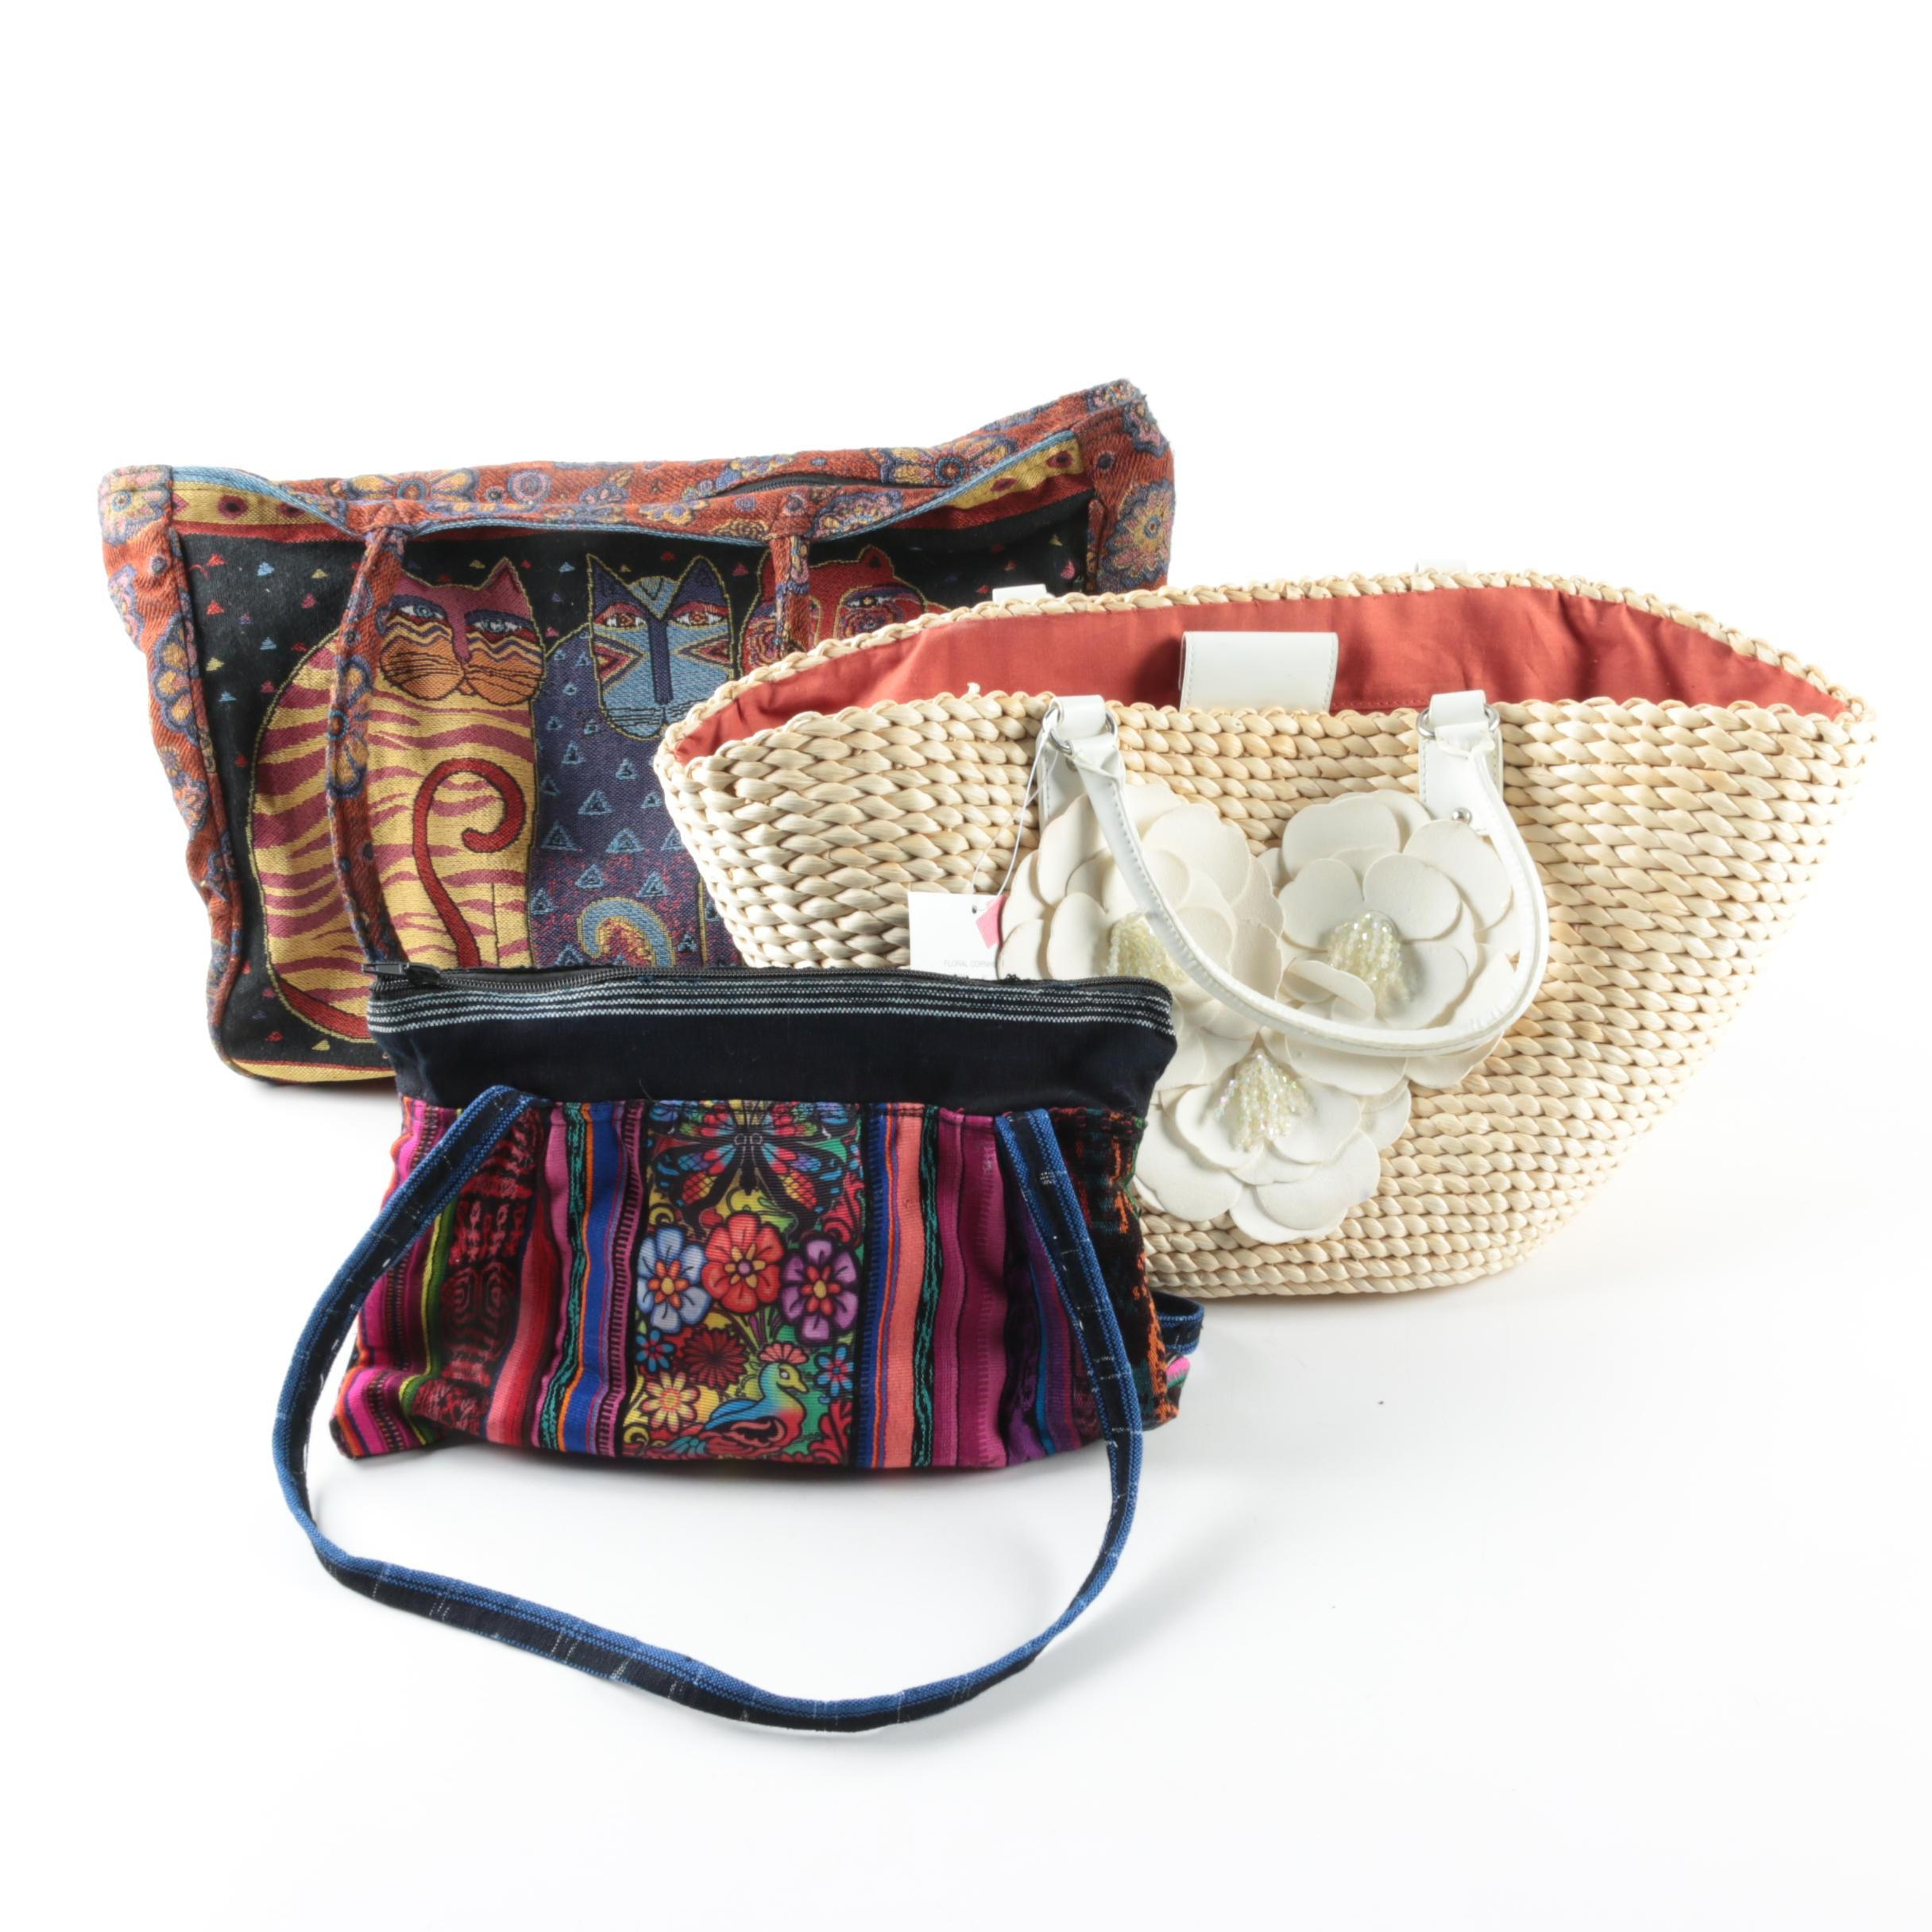 Totes and Handbag Including Laurel Burch and Apostrophe